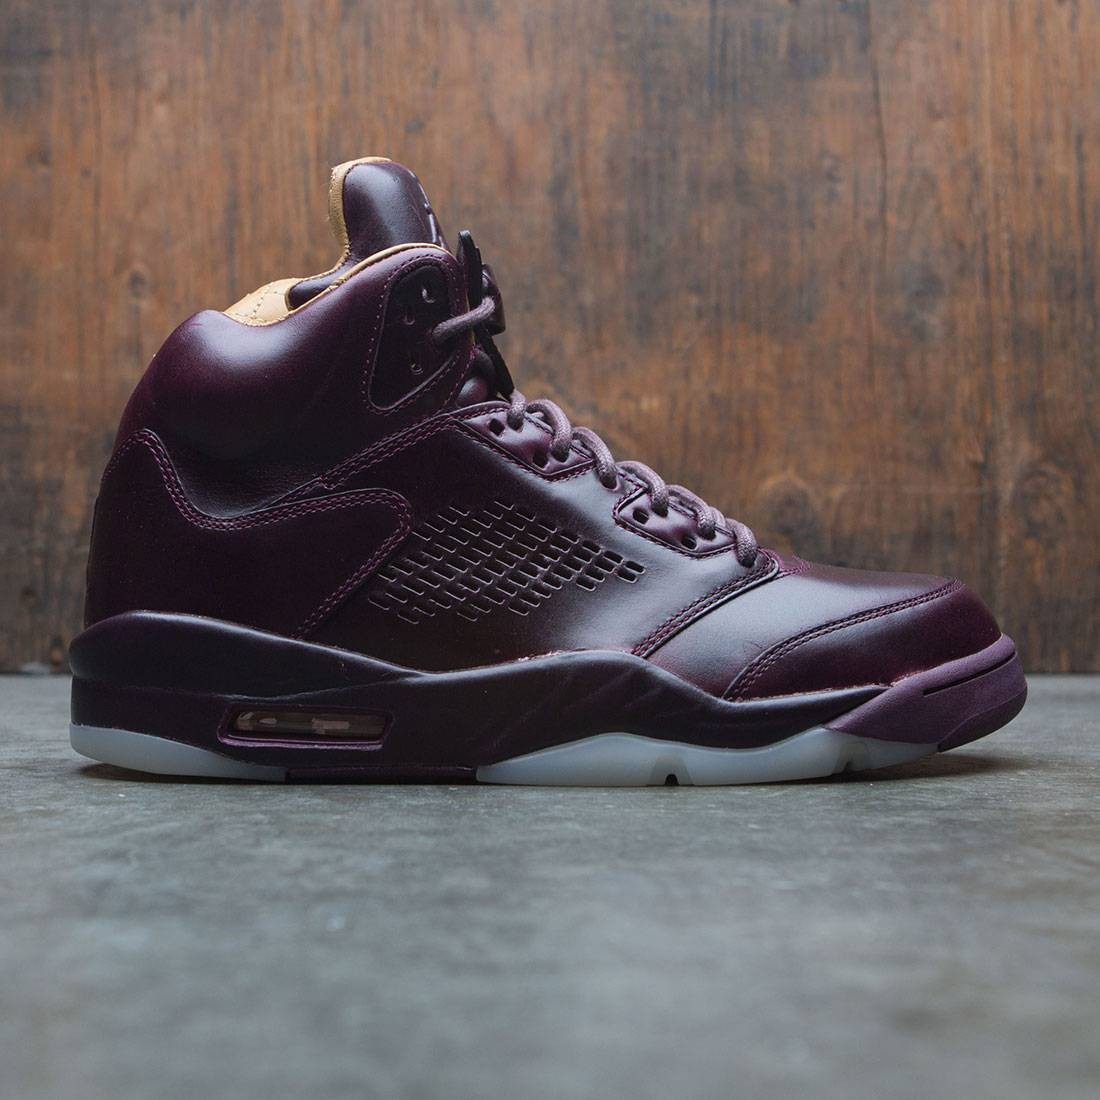 500c5aaaae8c jordan men air jordan 5 retro premium bordeaux bordeaux sail elemental gold